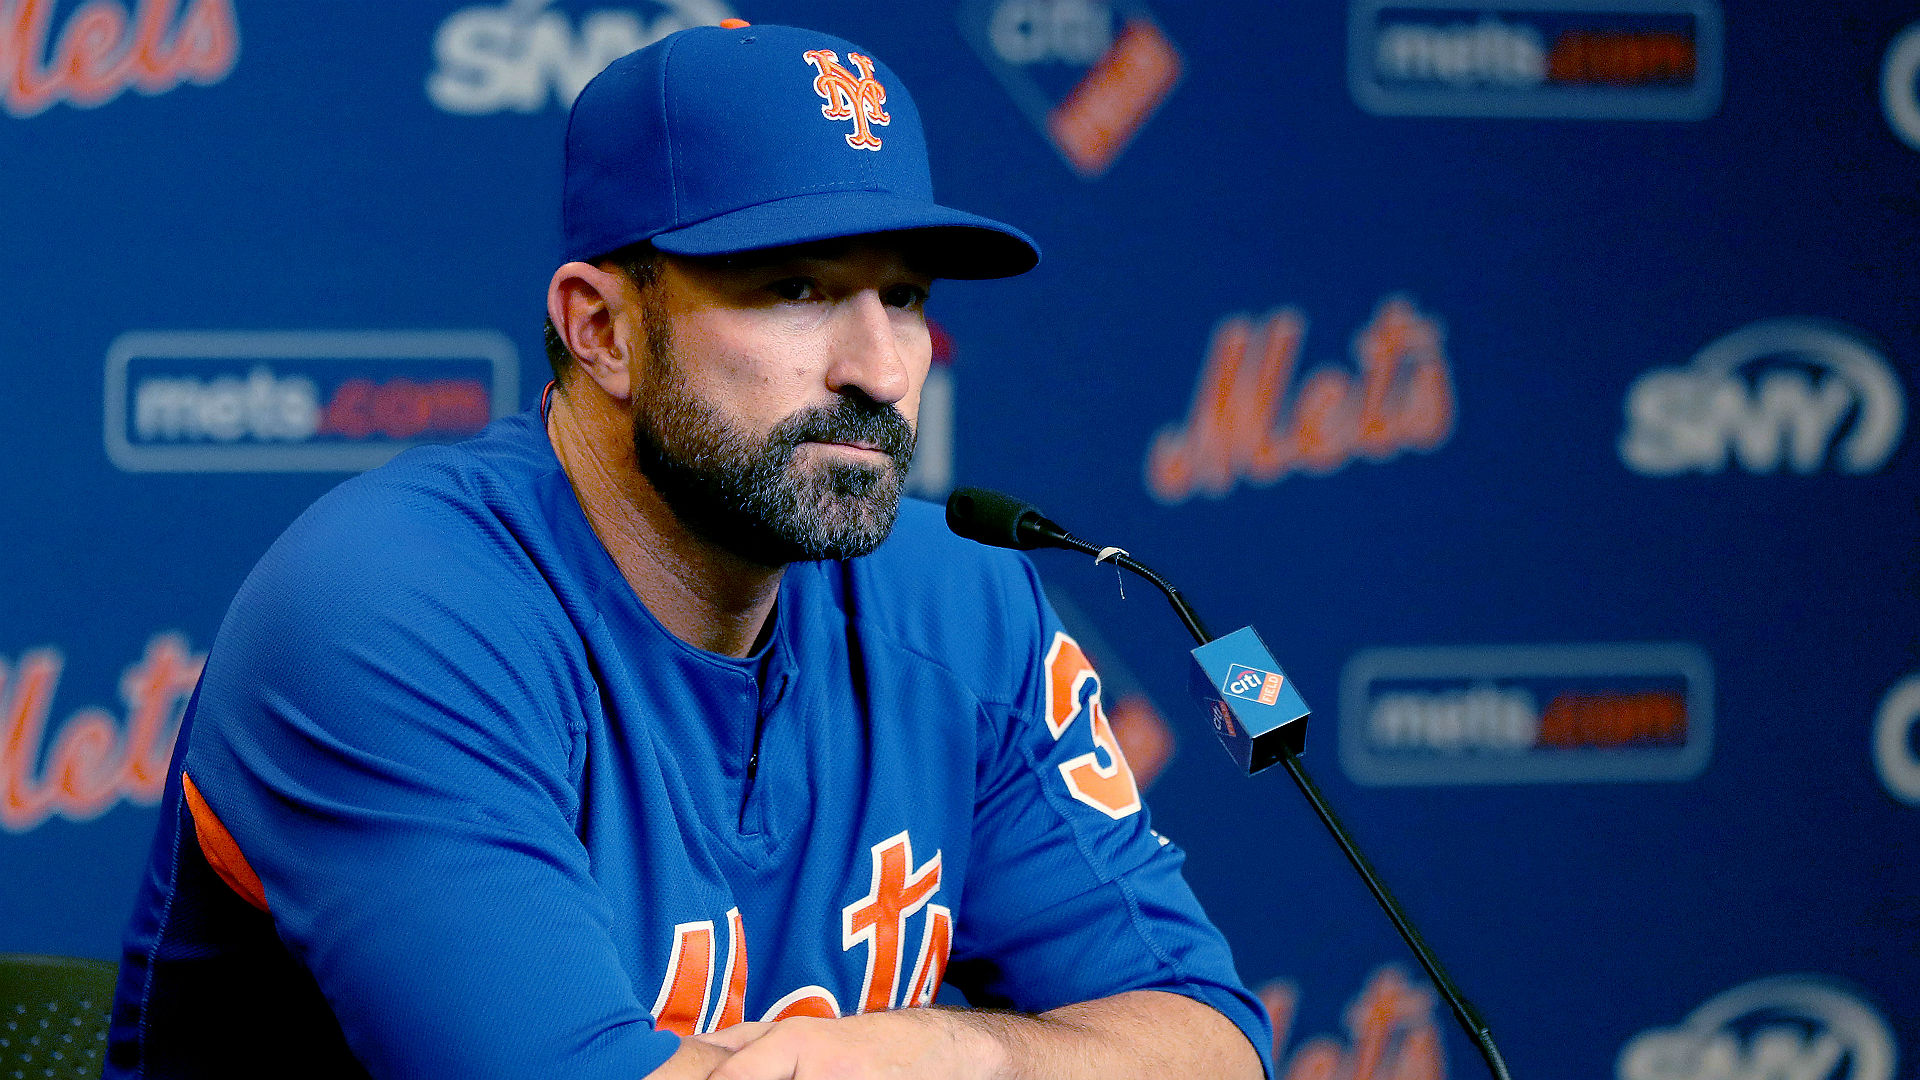 """The Mets organization does not condone the behavior that took place yesterday,"" Mets general manager Brodie Van Wagenen told reporters."